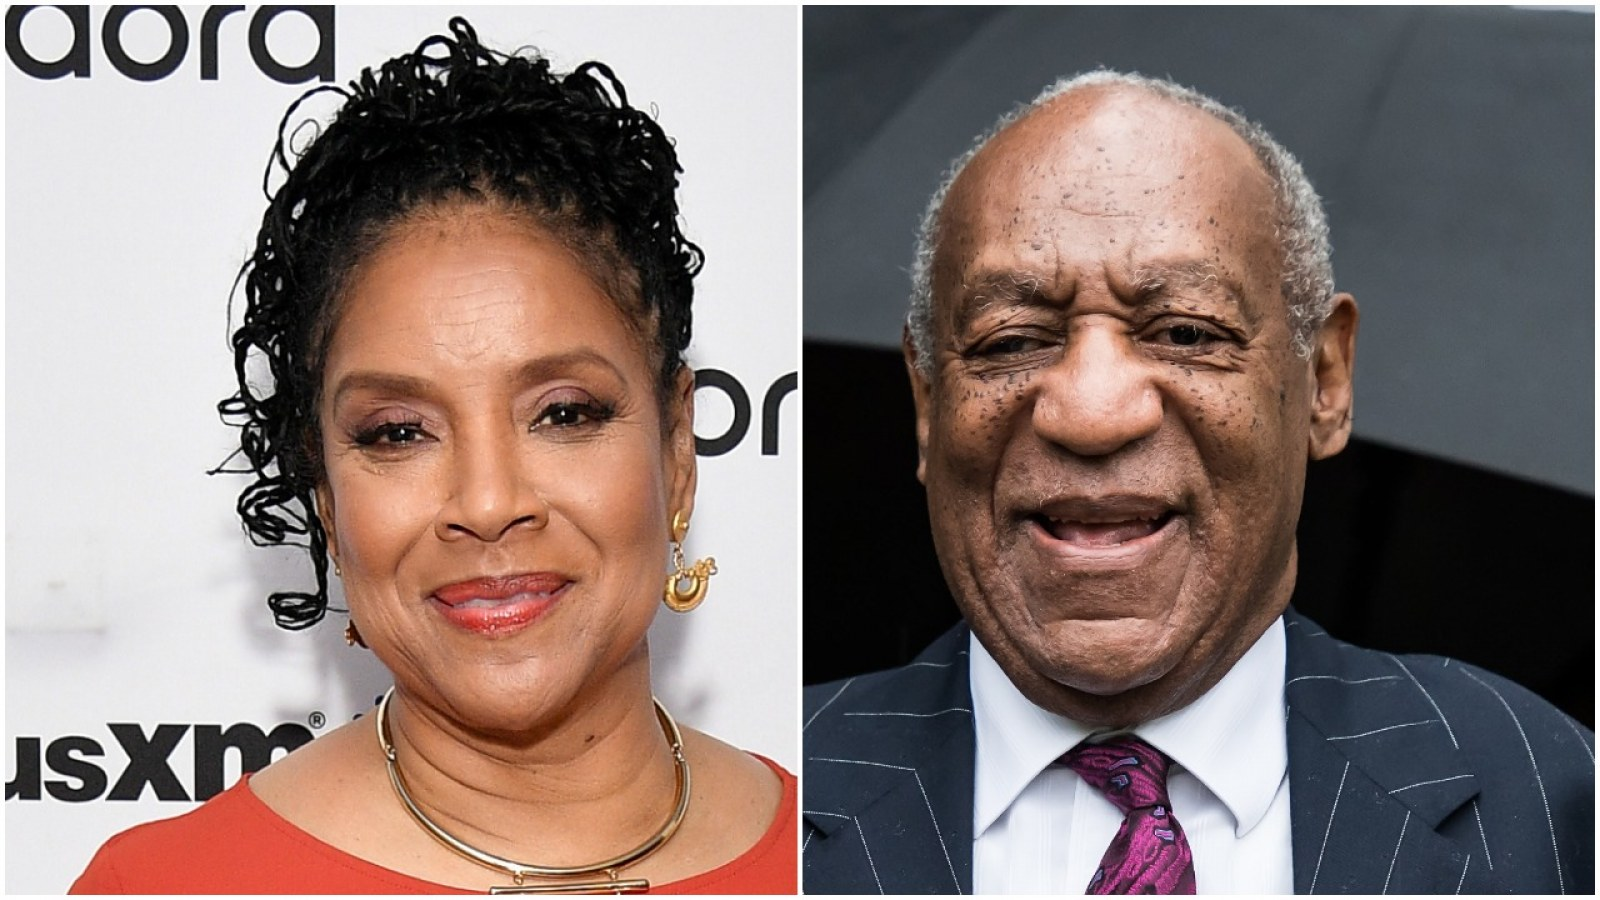 Phylicia Rashad writes a formal letter apologizing to Howard University after celebrating the release of Bill Cosby from prison